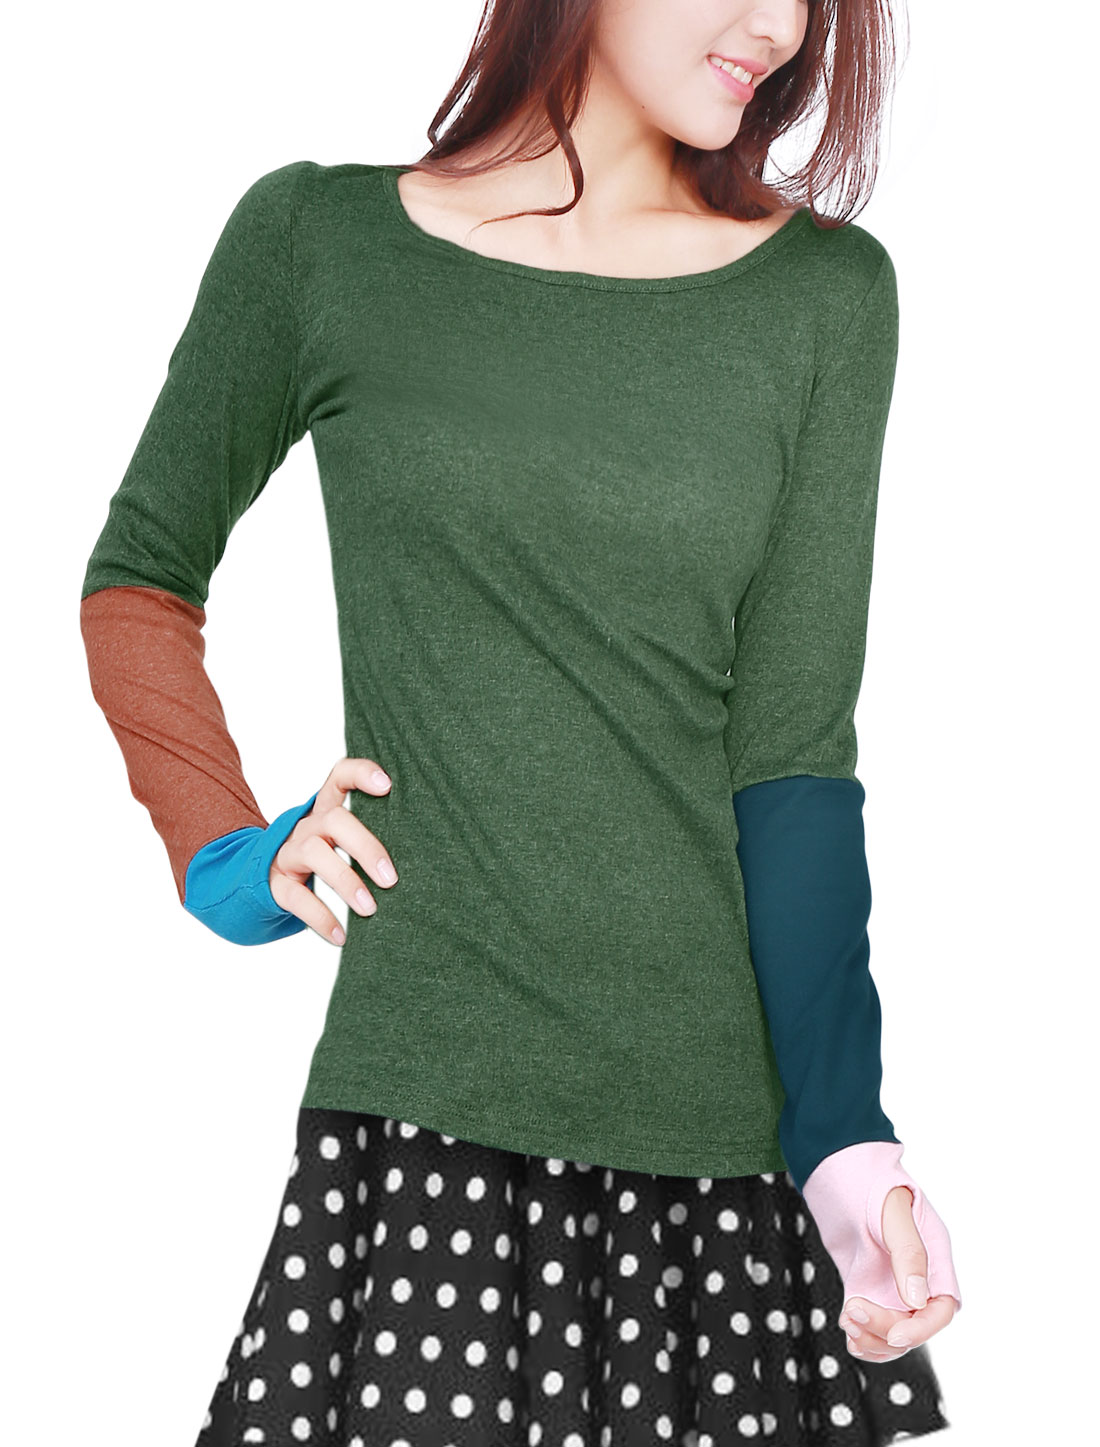 Ladies Chic Dark Green Scoop Neck Long Sleeve Casual Spring Shirt S